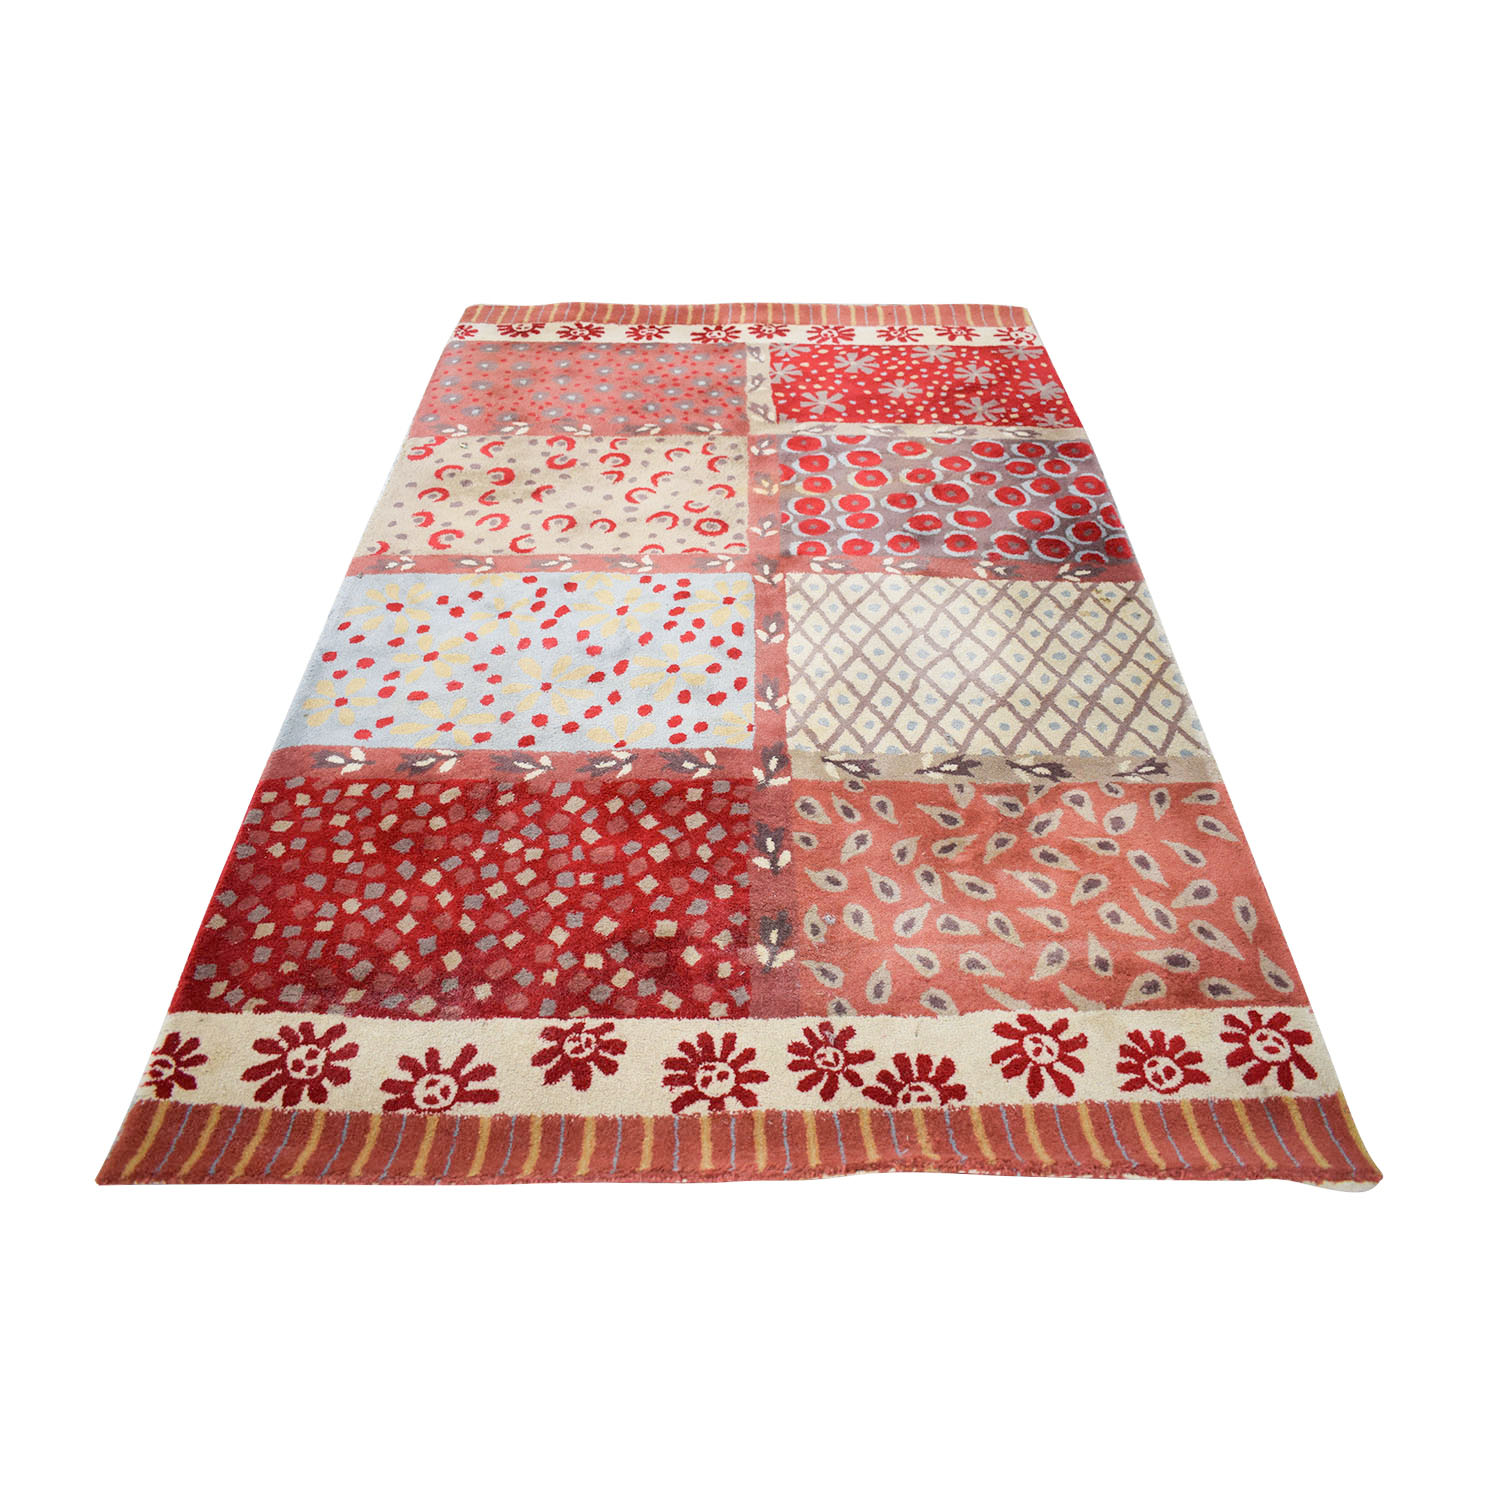 shop Pottery Barn Pottery Barn Red Multi-Colored Rug online